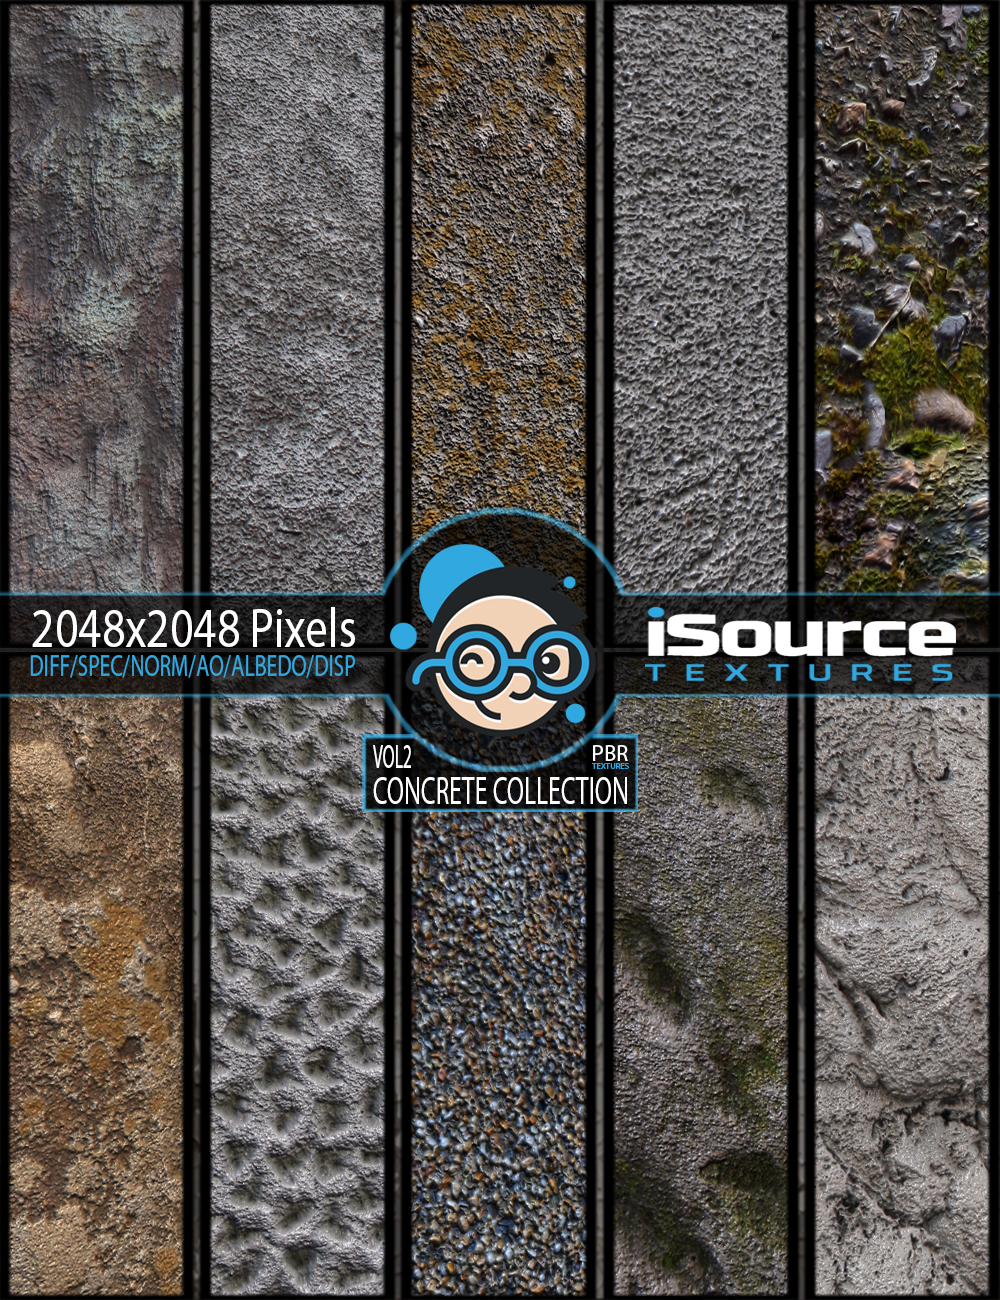 Concrete Collection - Vol2 (PBR Textures)